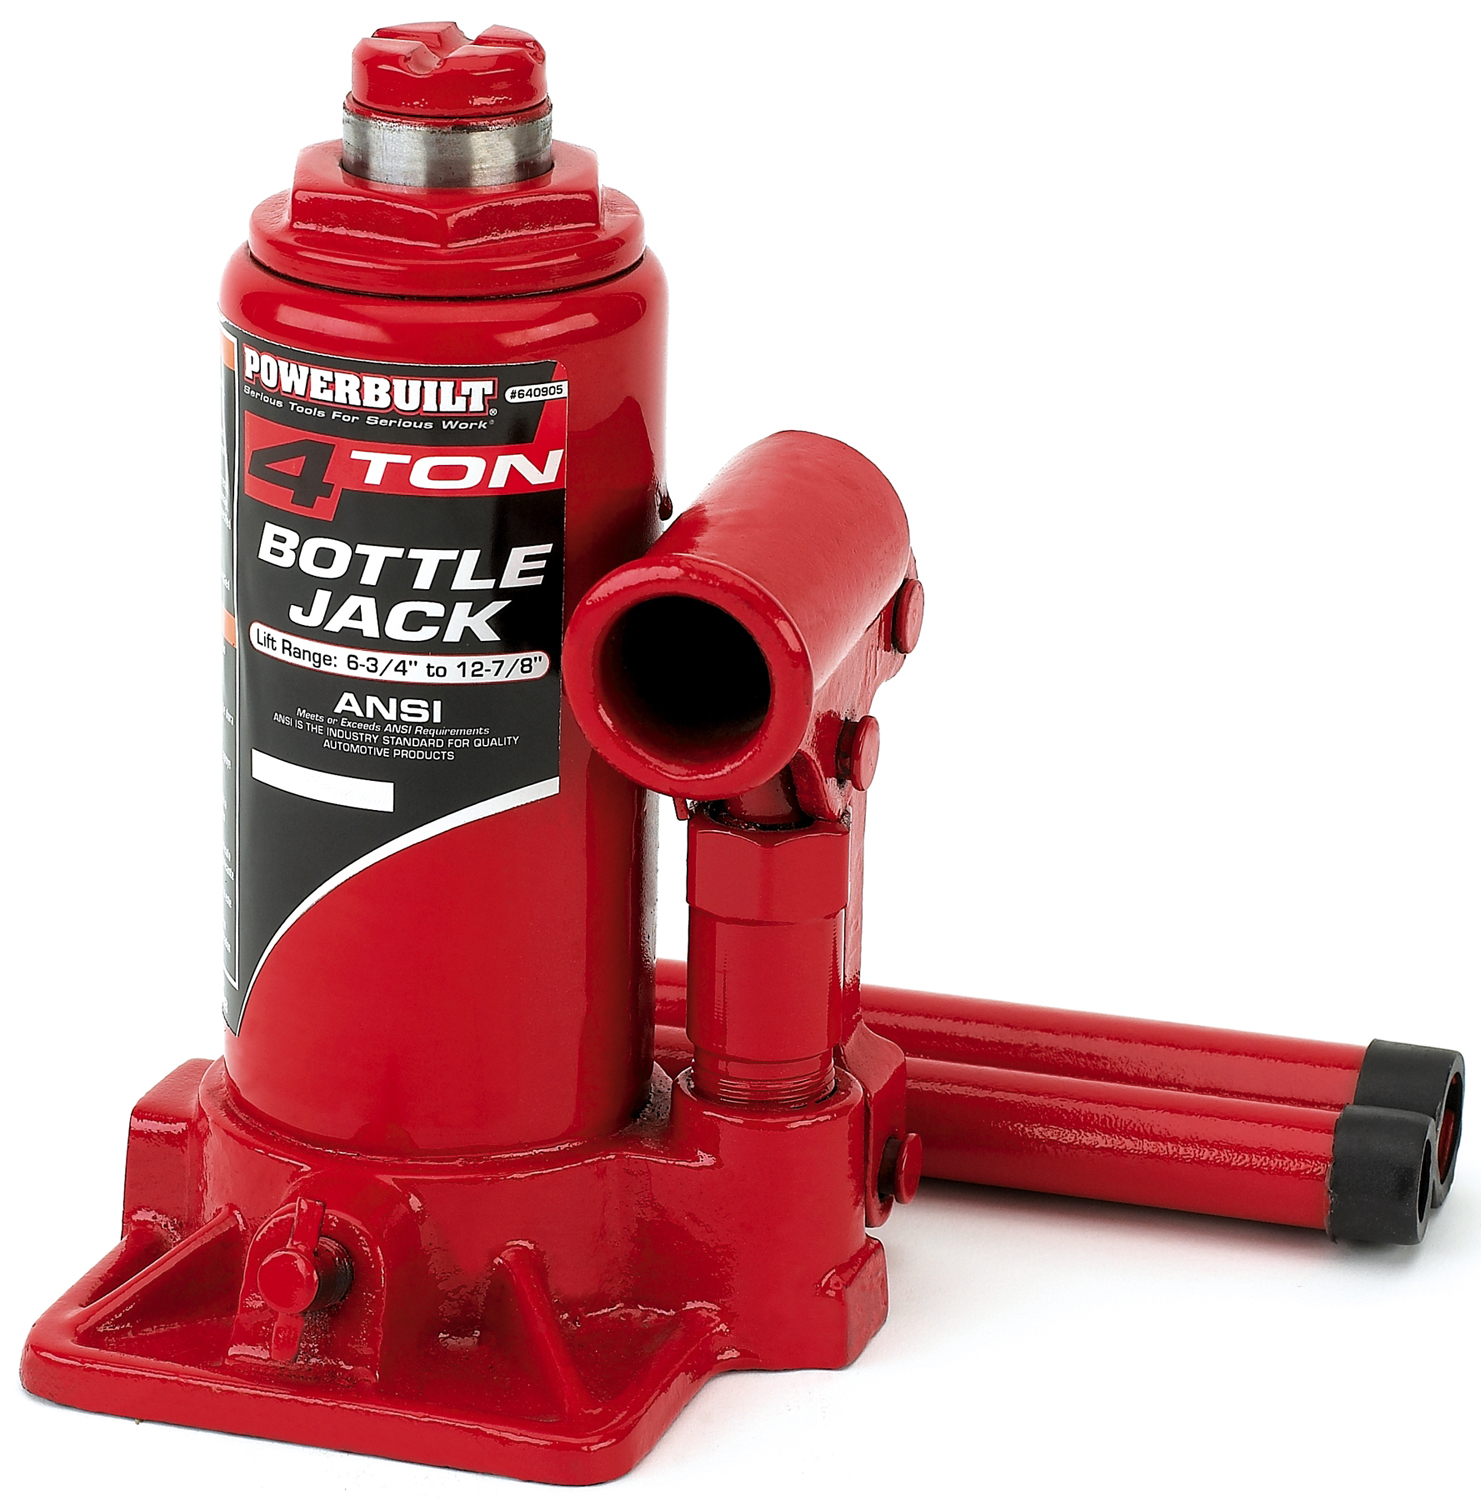 Powerbuilt 4 Ton Bottle Jack 640905